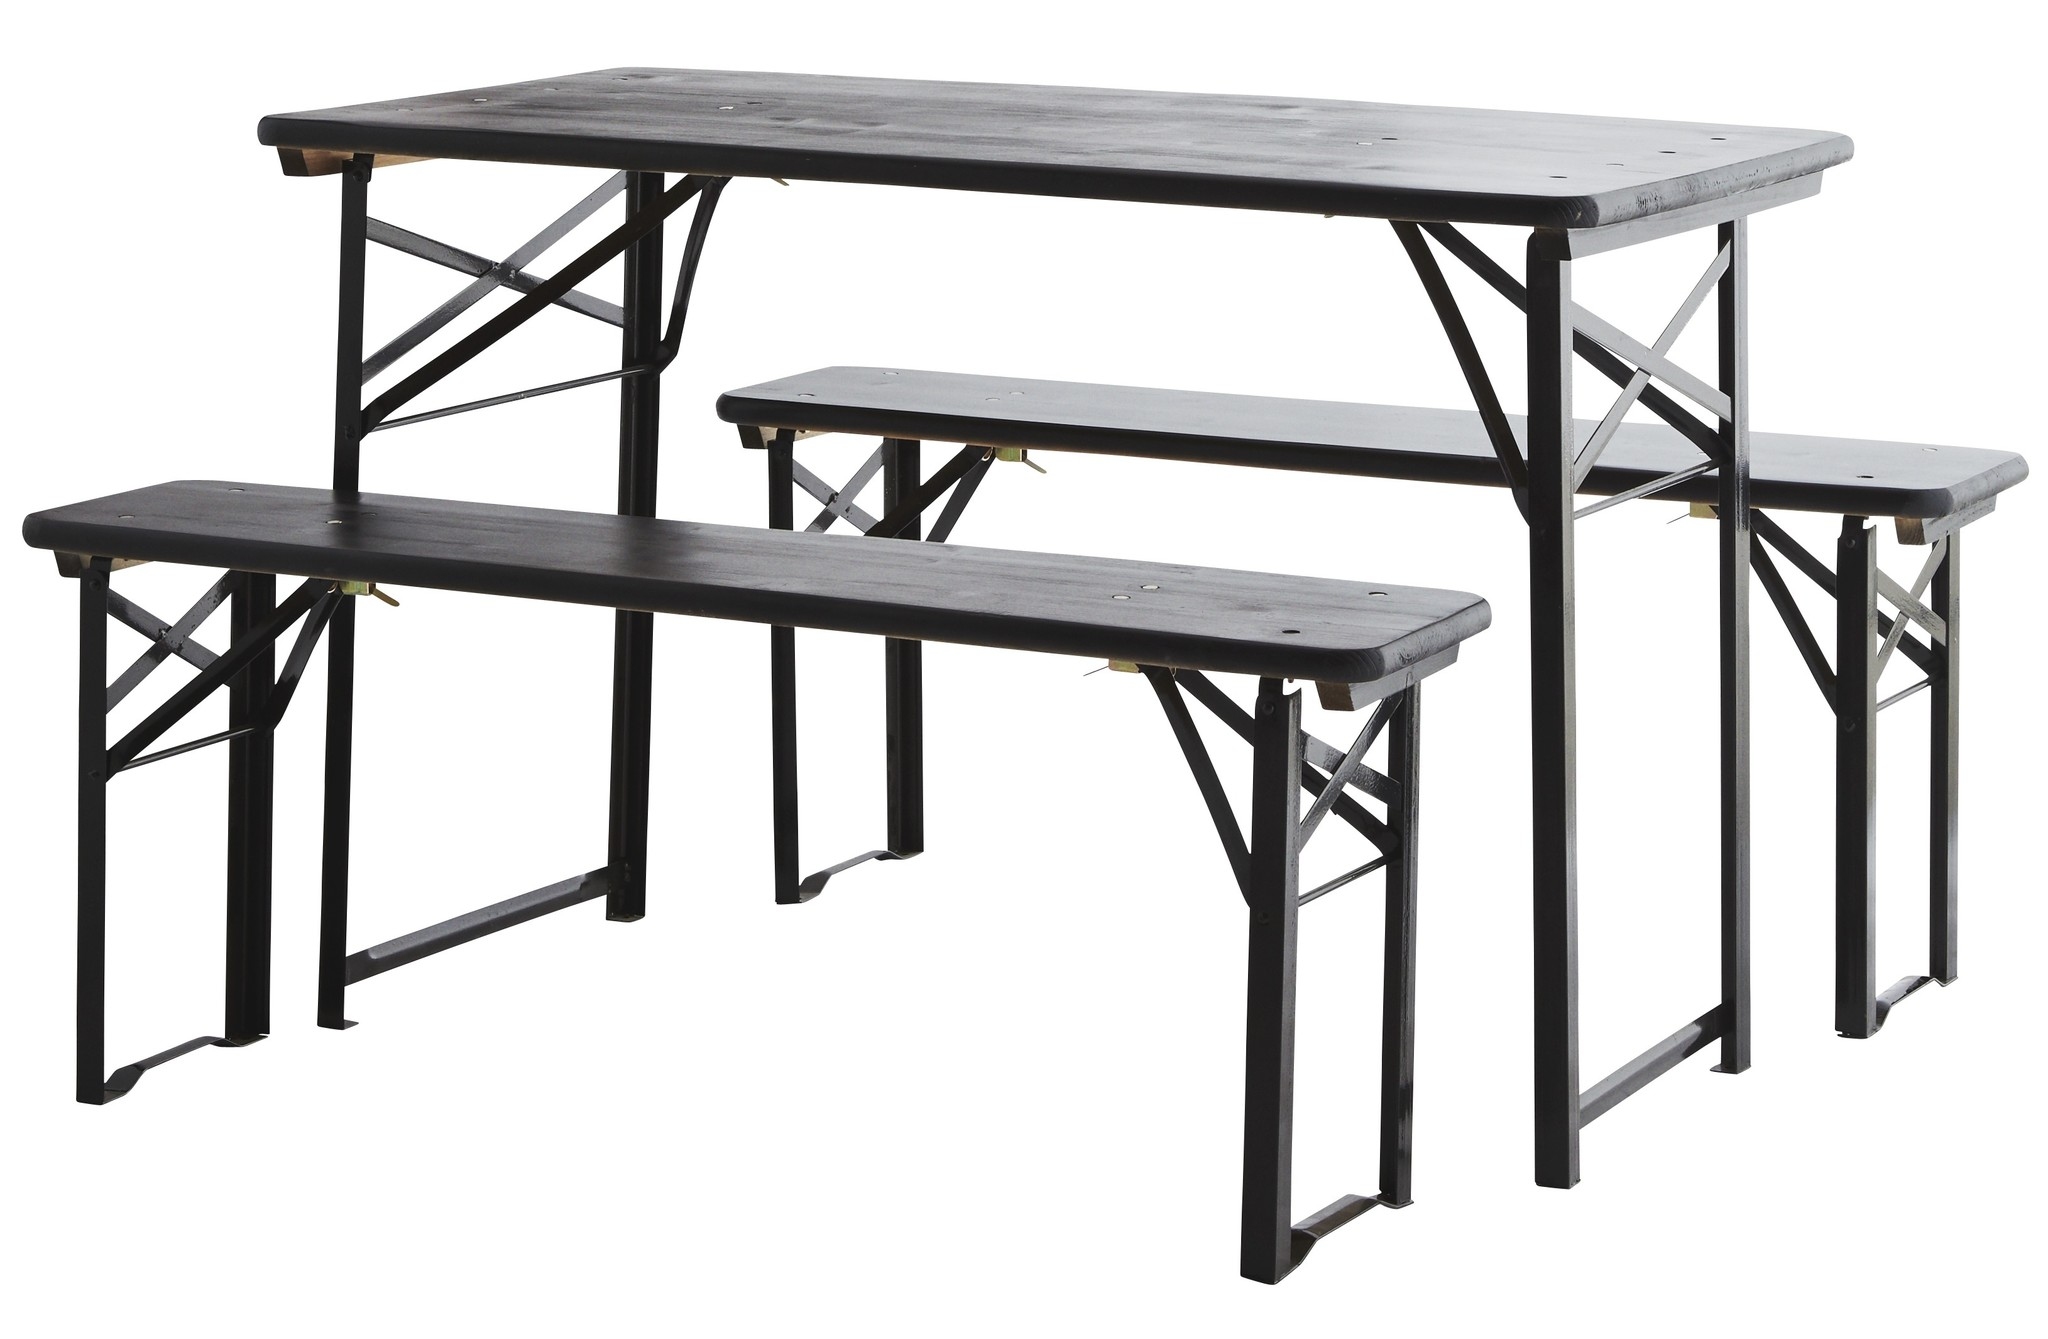 Madam Stoltz folding table with benches, black